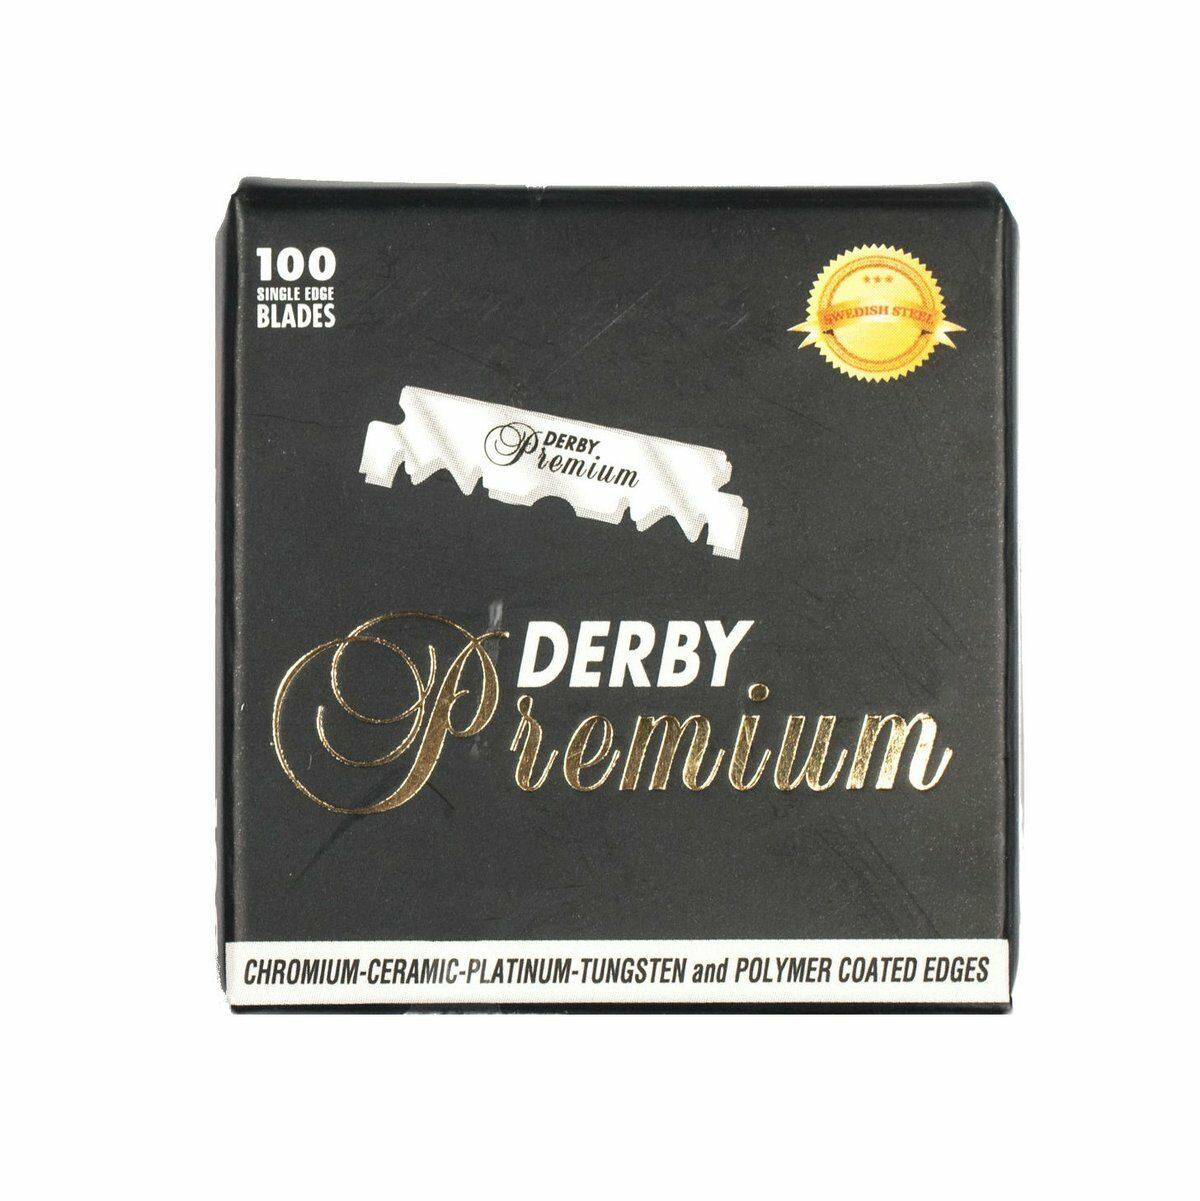 NEW!!! 100 Blades Single Edge Derby PREMIUM Razor Blades Barber,SWEDISH STEEL